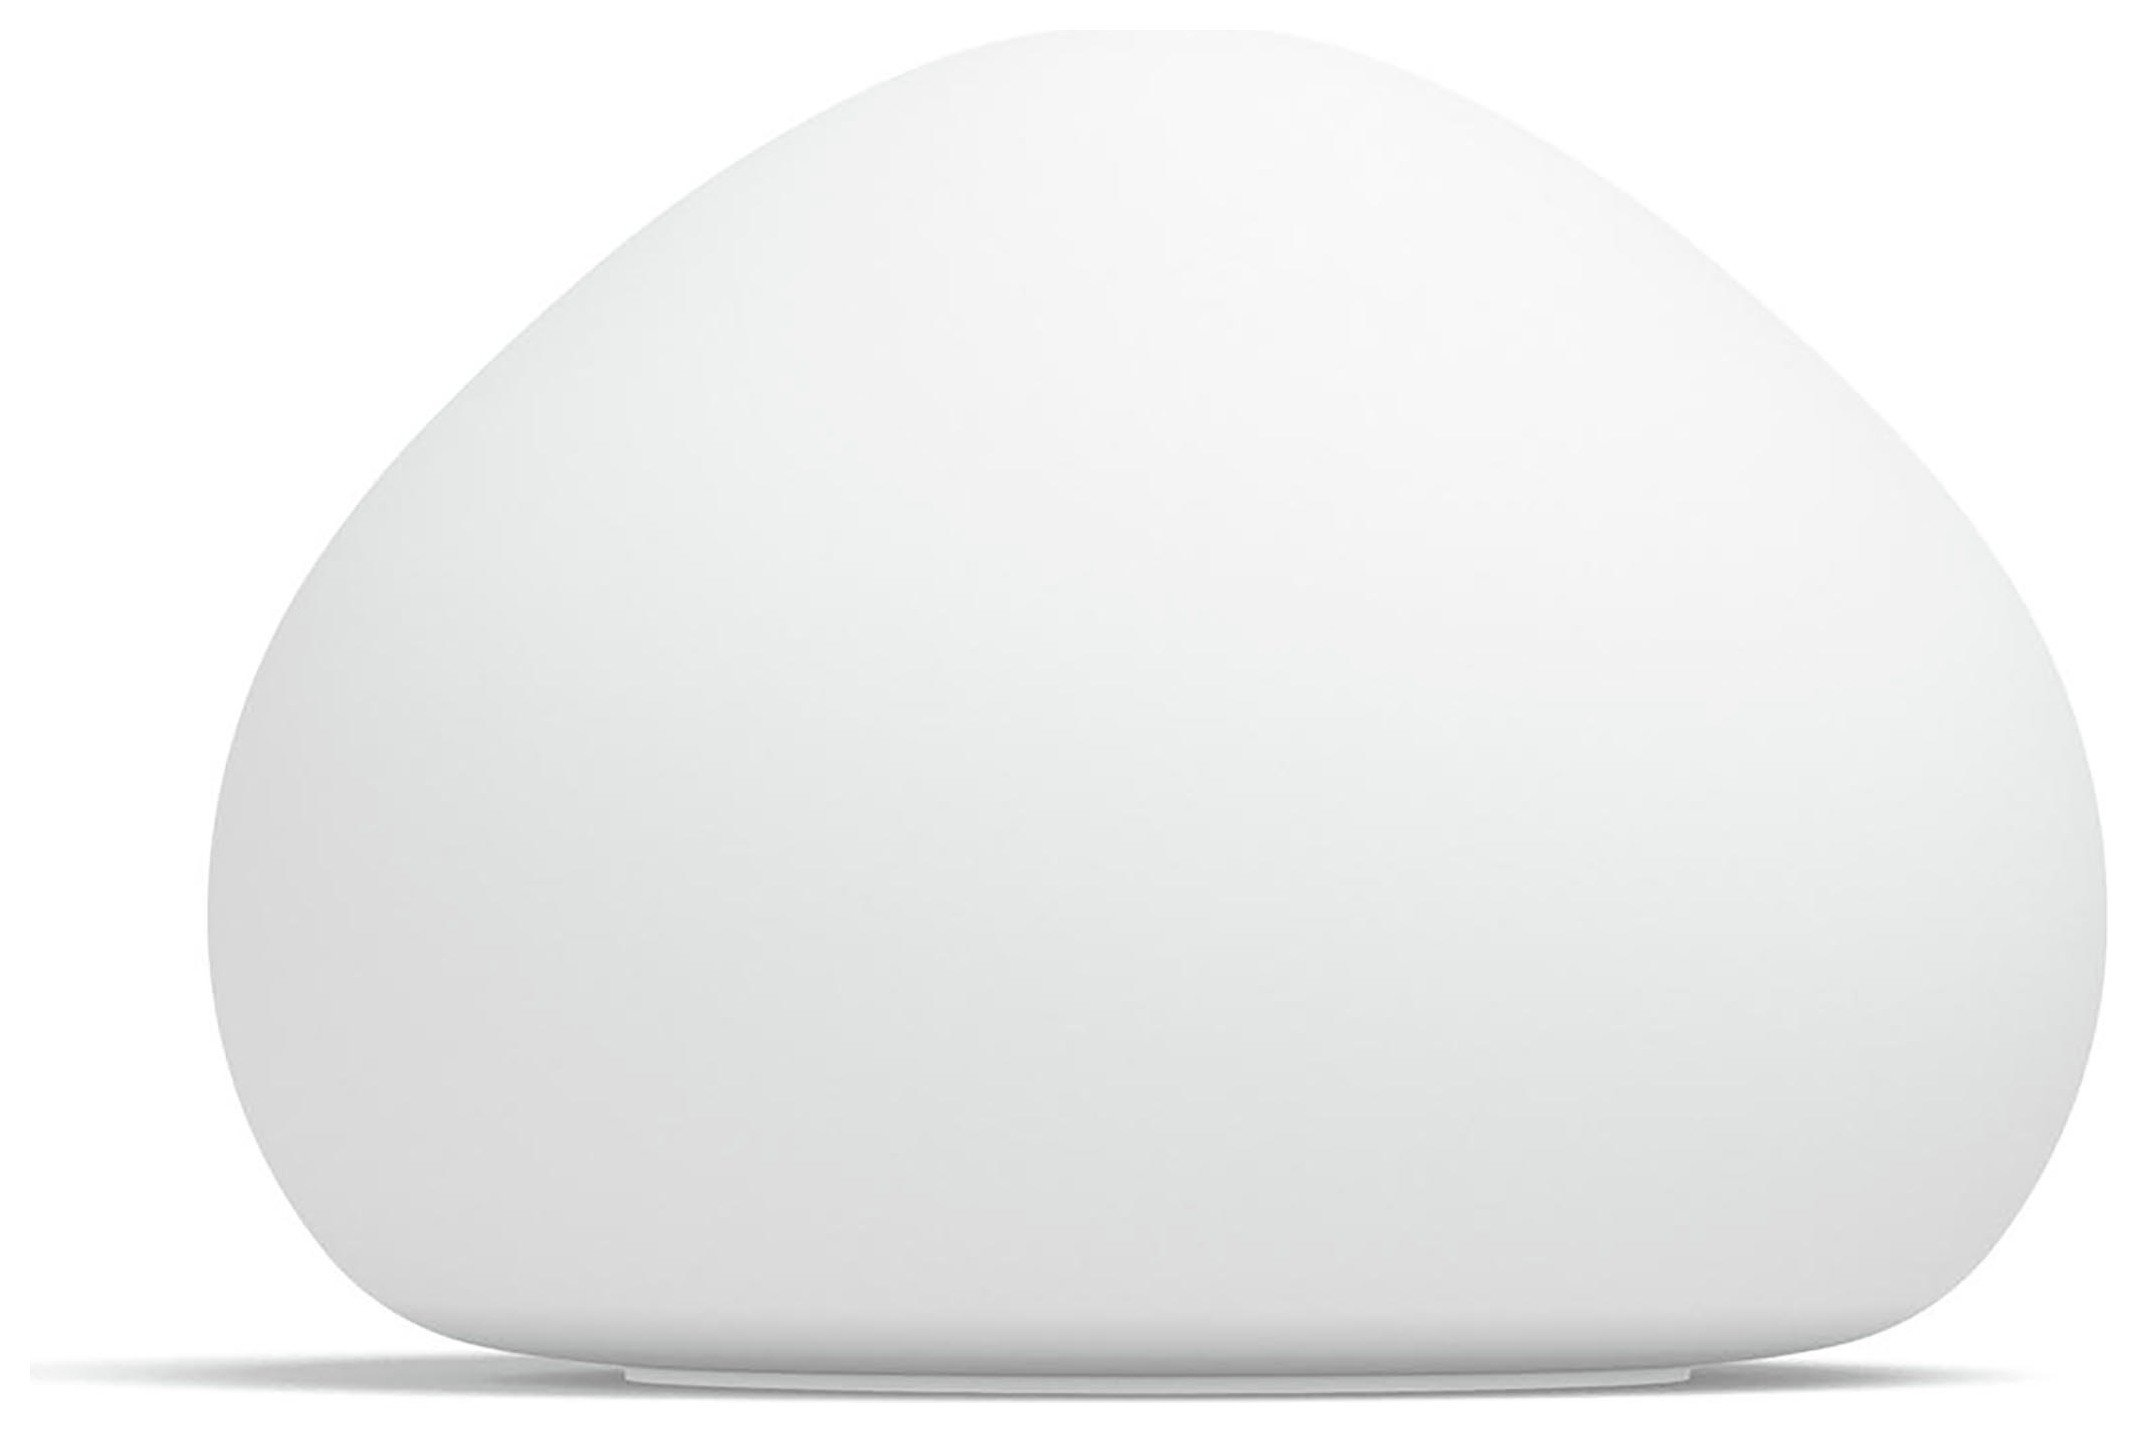 Image of Philips Hue White Ambiance Table Lamp.